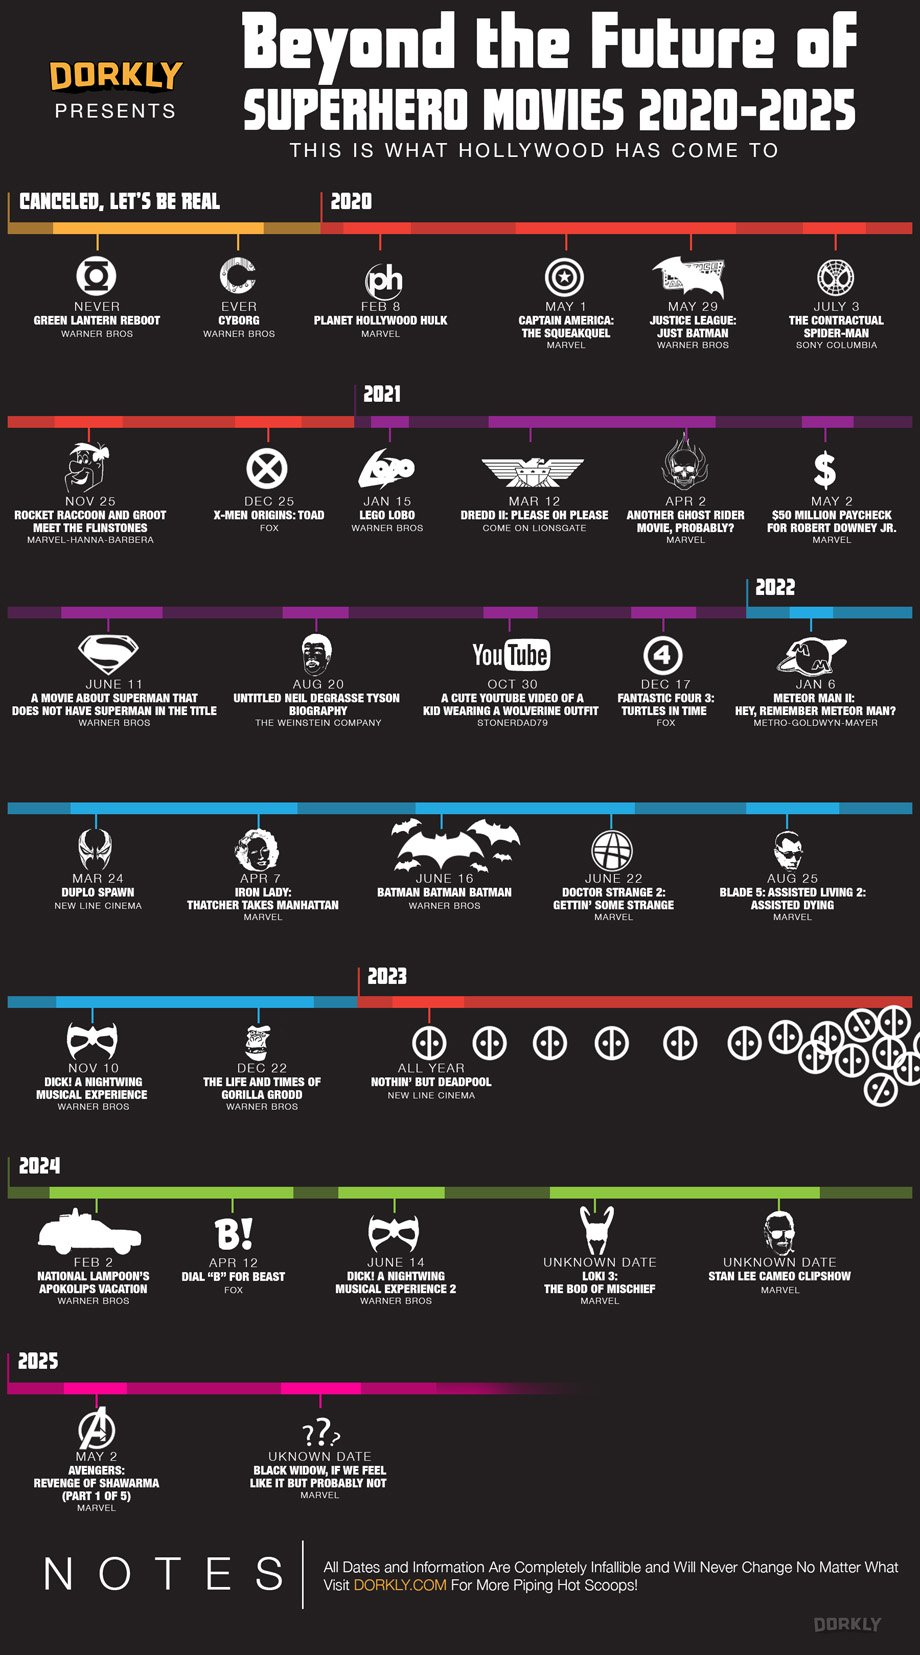 lol: superhero movie calendar from 2020-2025